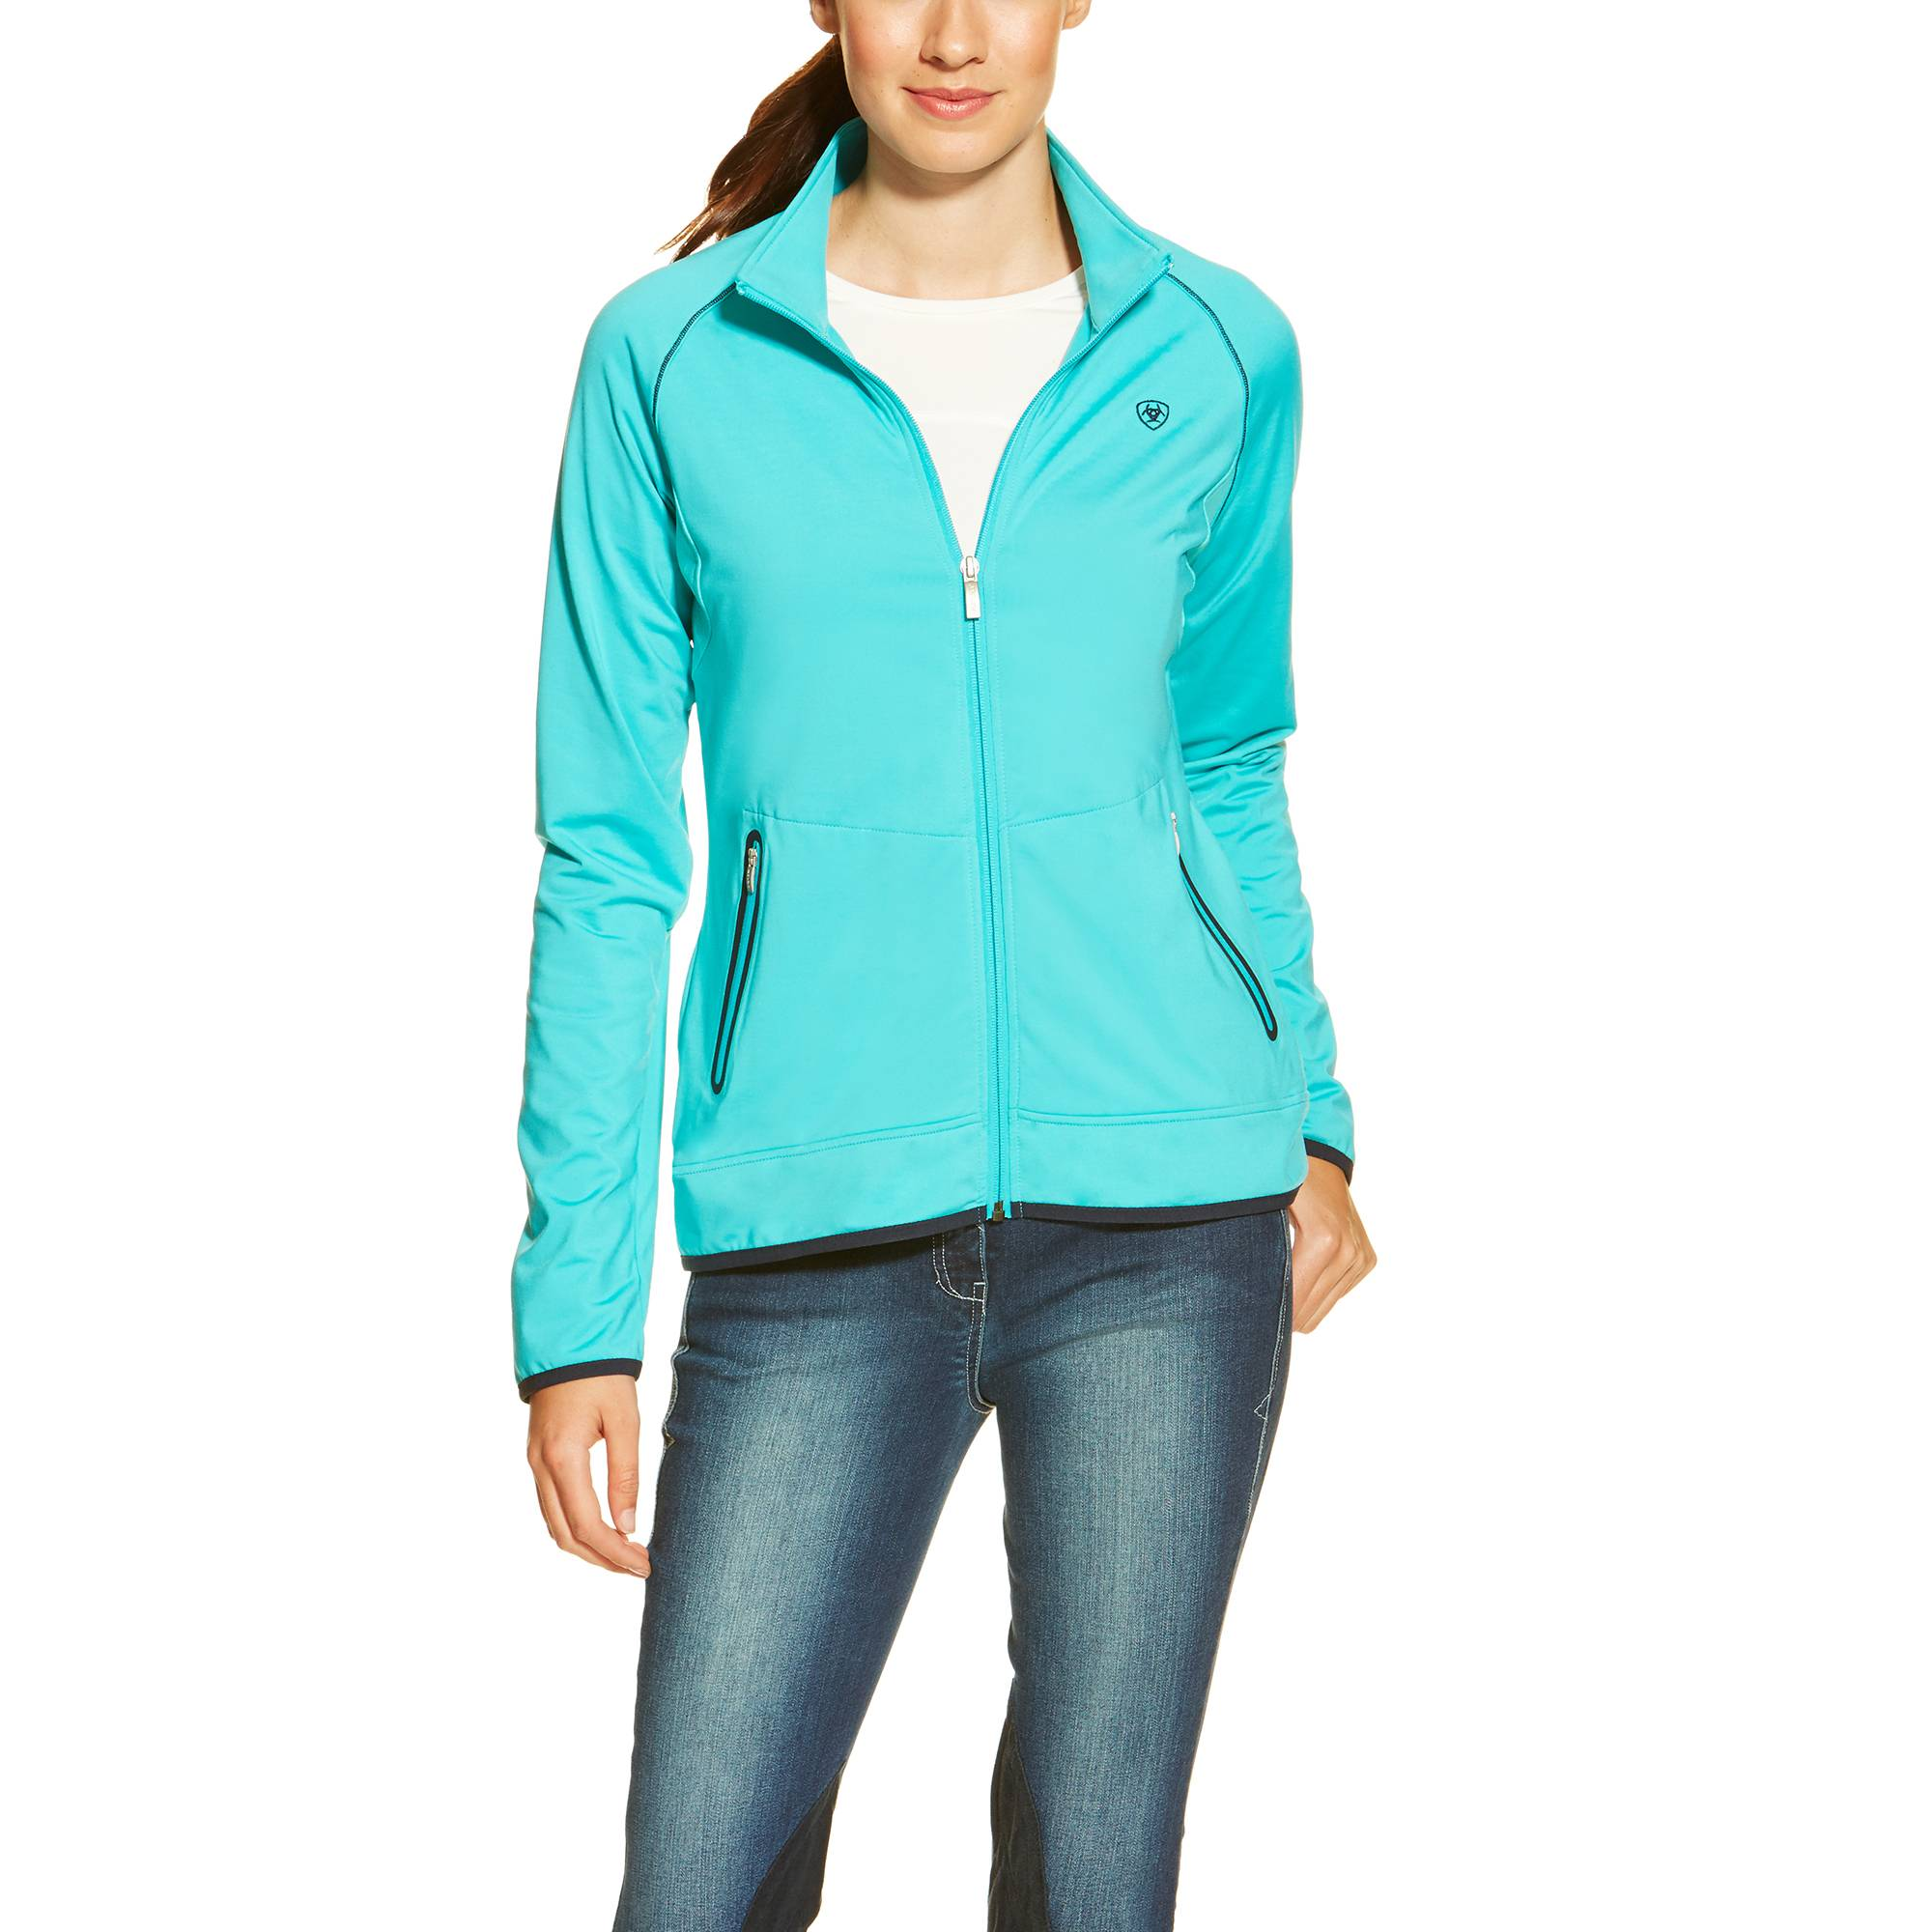 Ariat Ballad Full Zip - Ladies - Bluebird